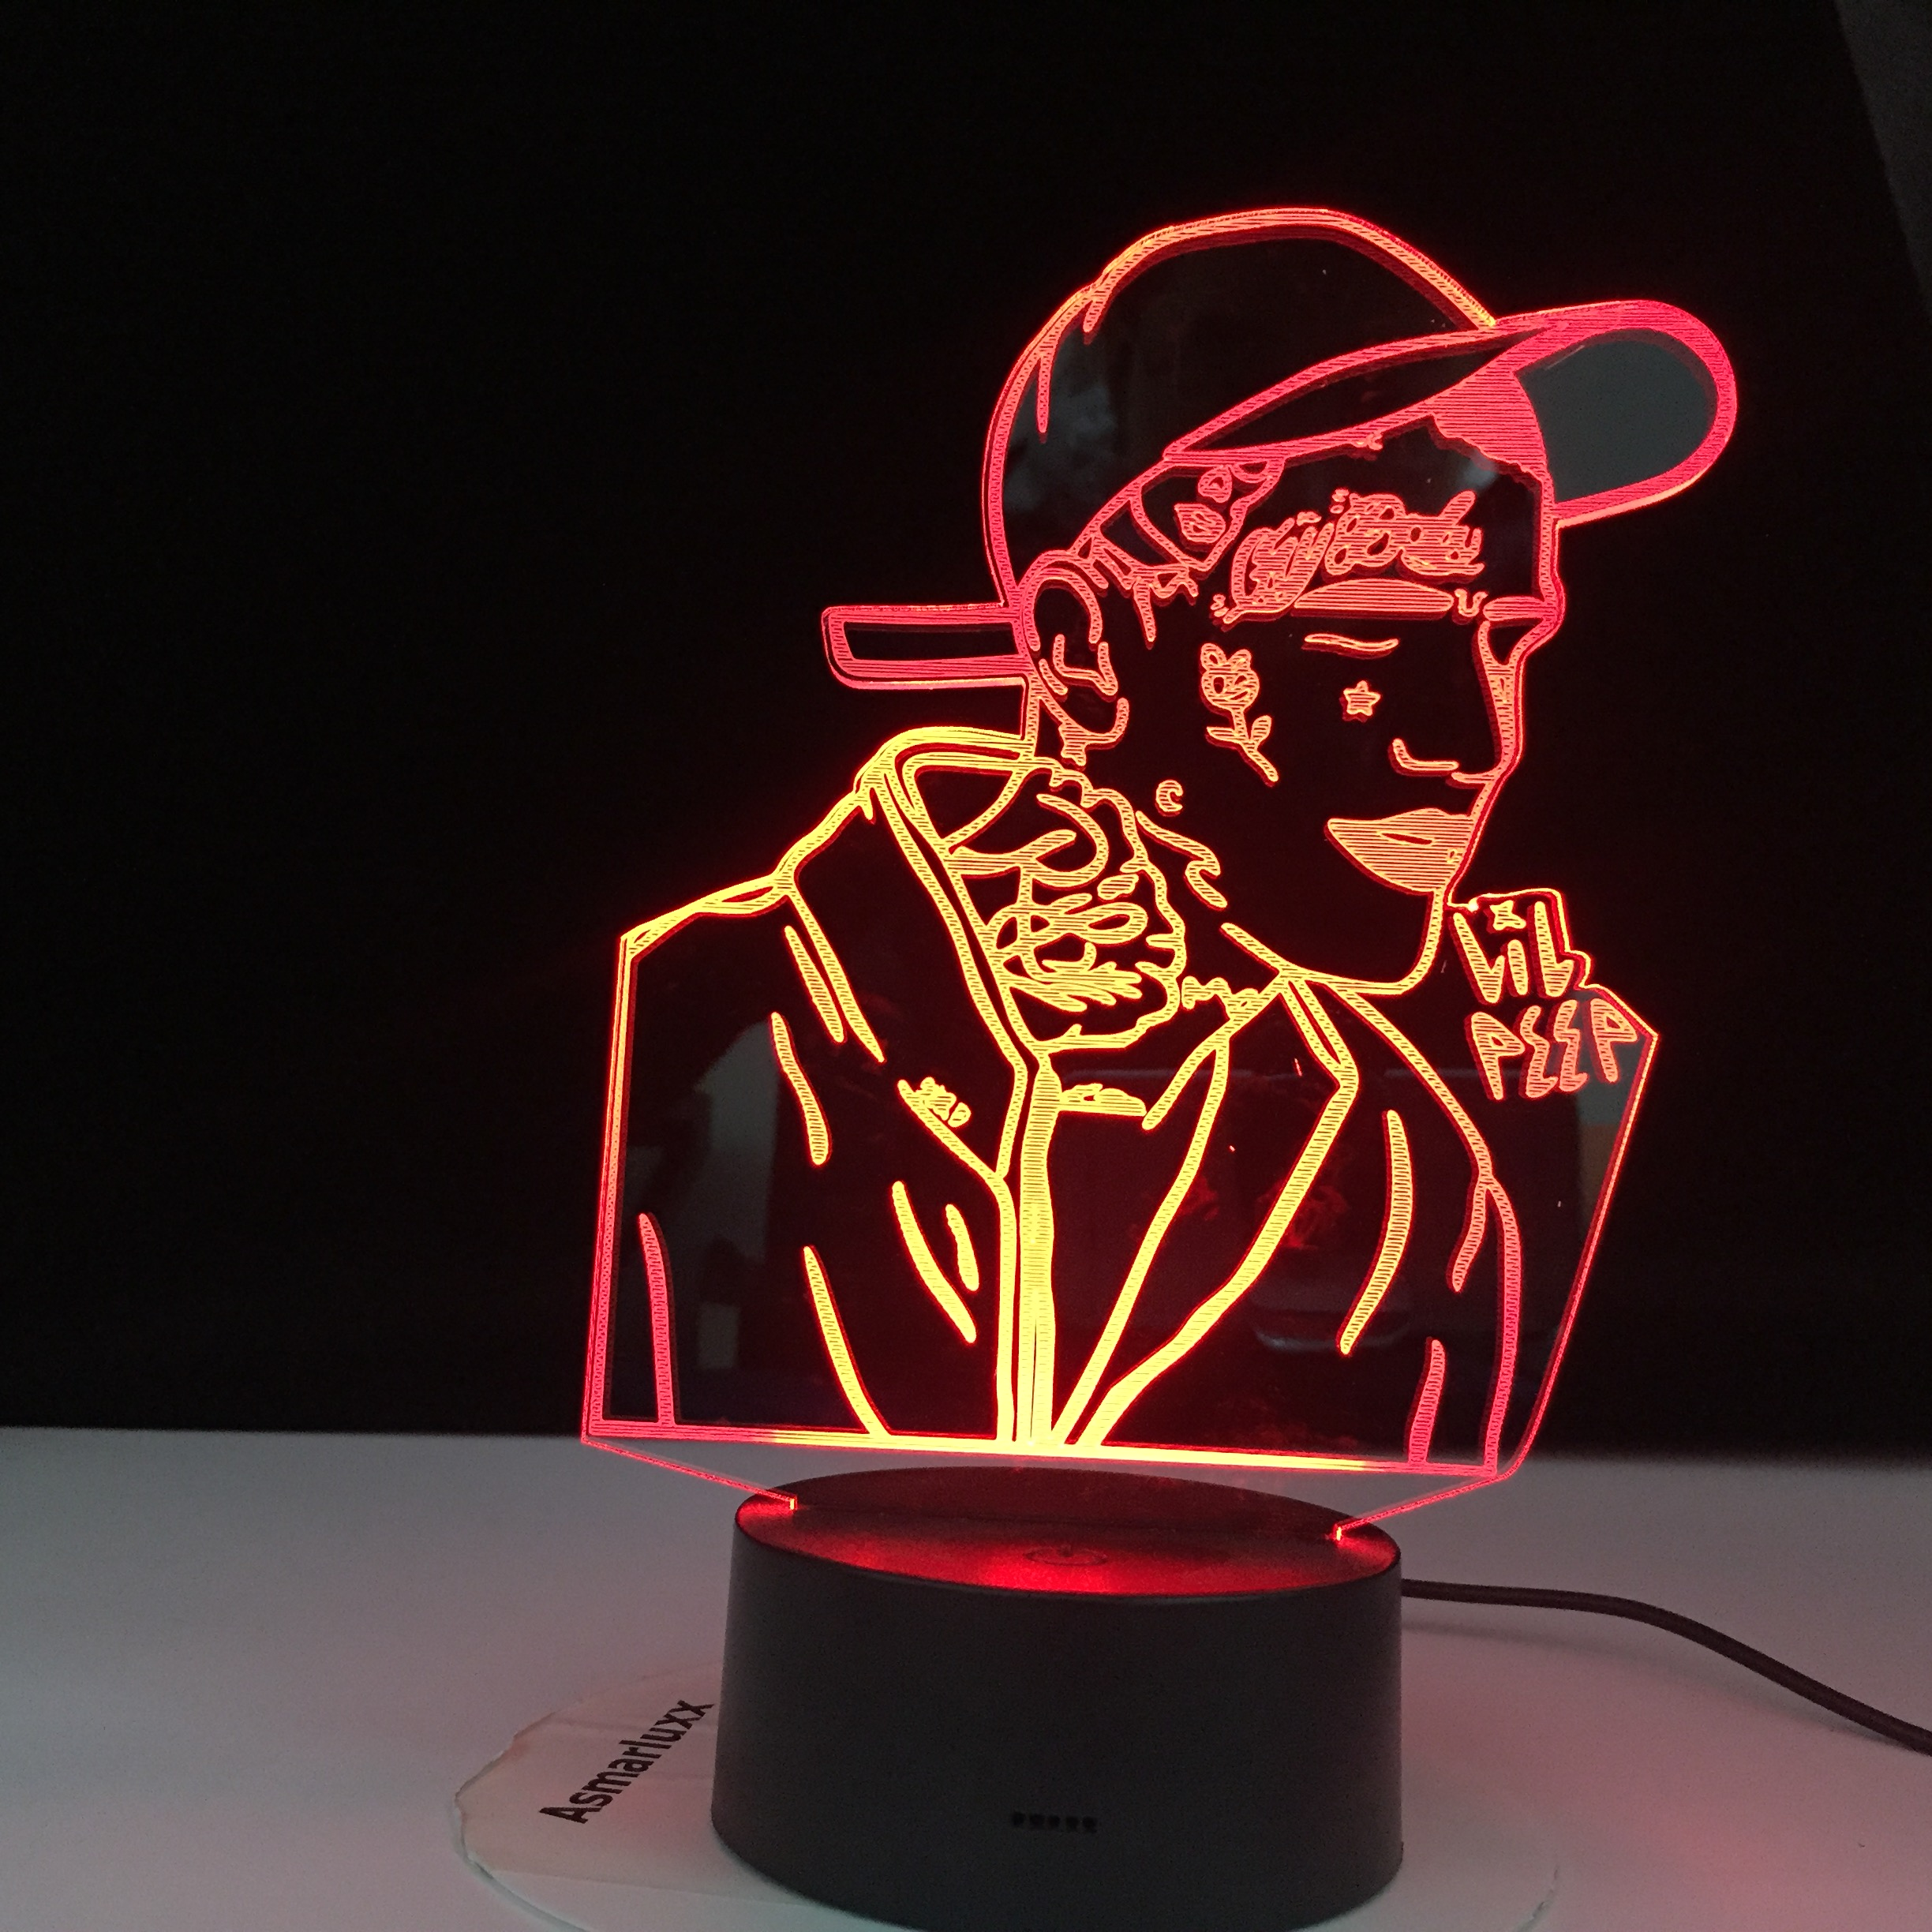 Lil Peep American Rapper 3D Led Night Light For Home Decoration Colorful Celebrity Nightlight Gift For Fans Dropshipping